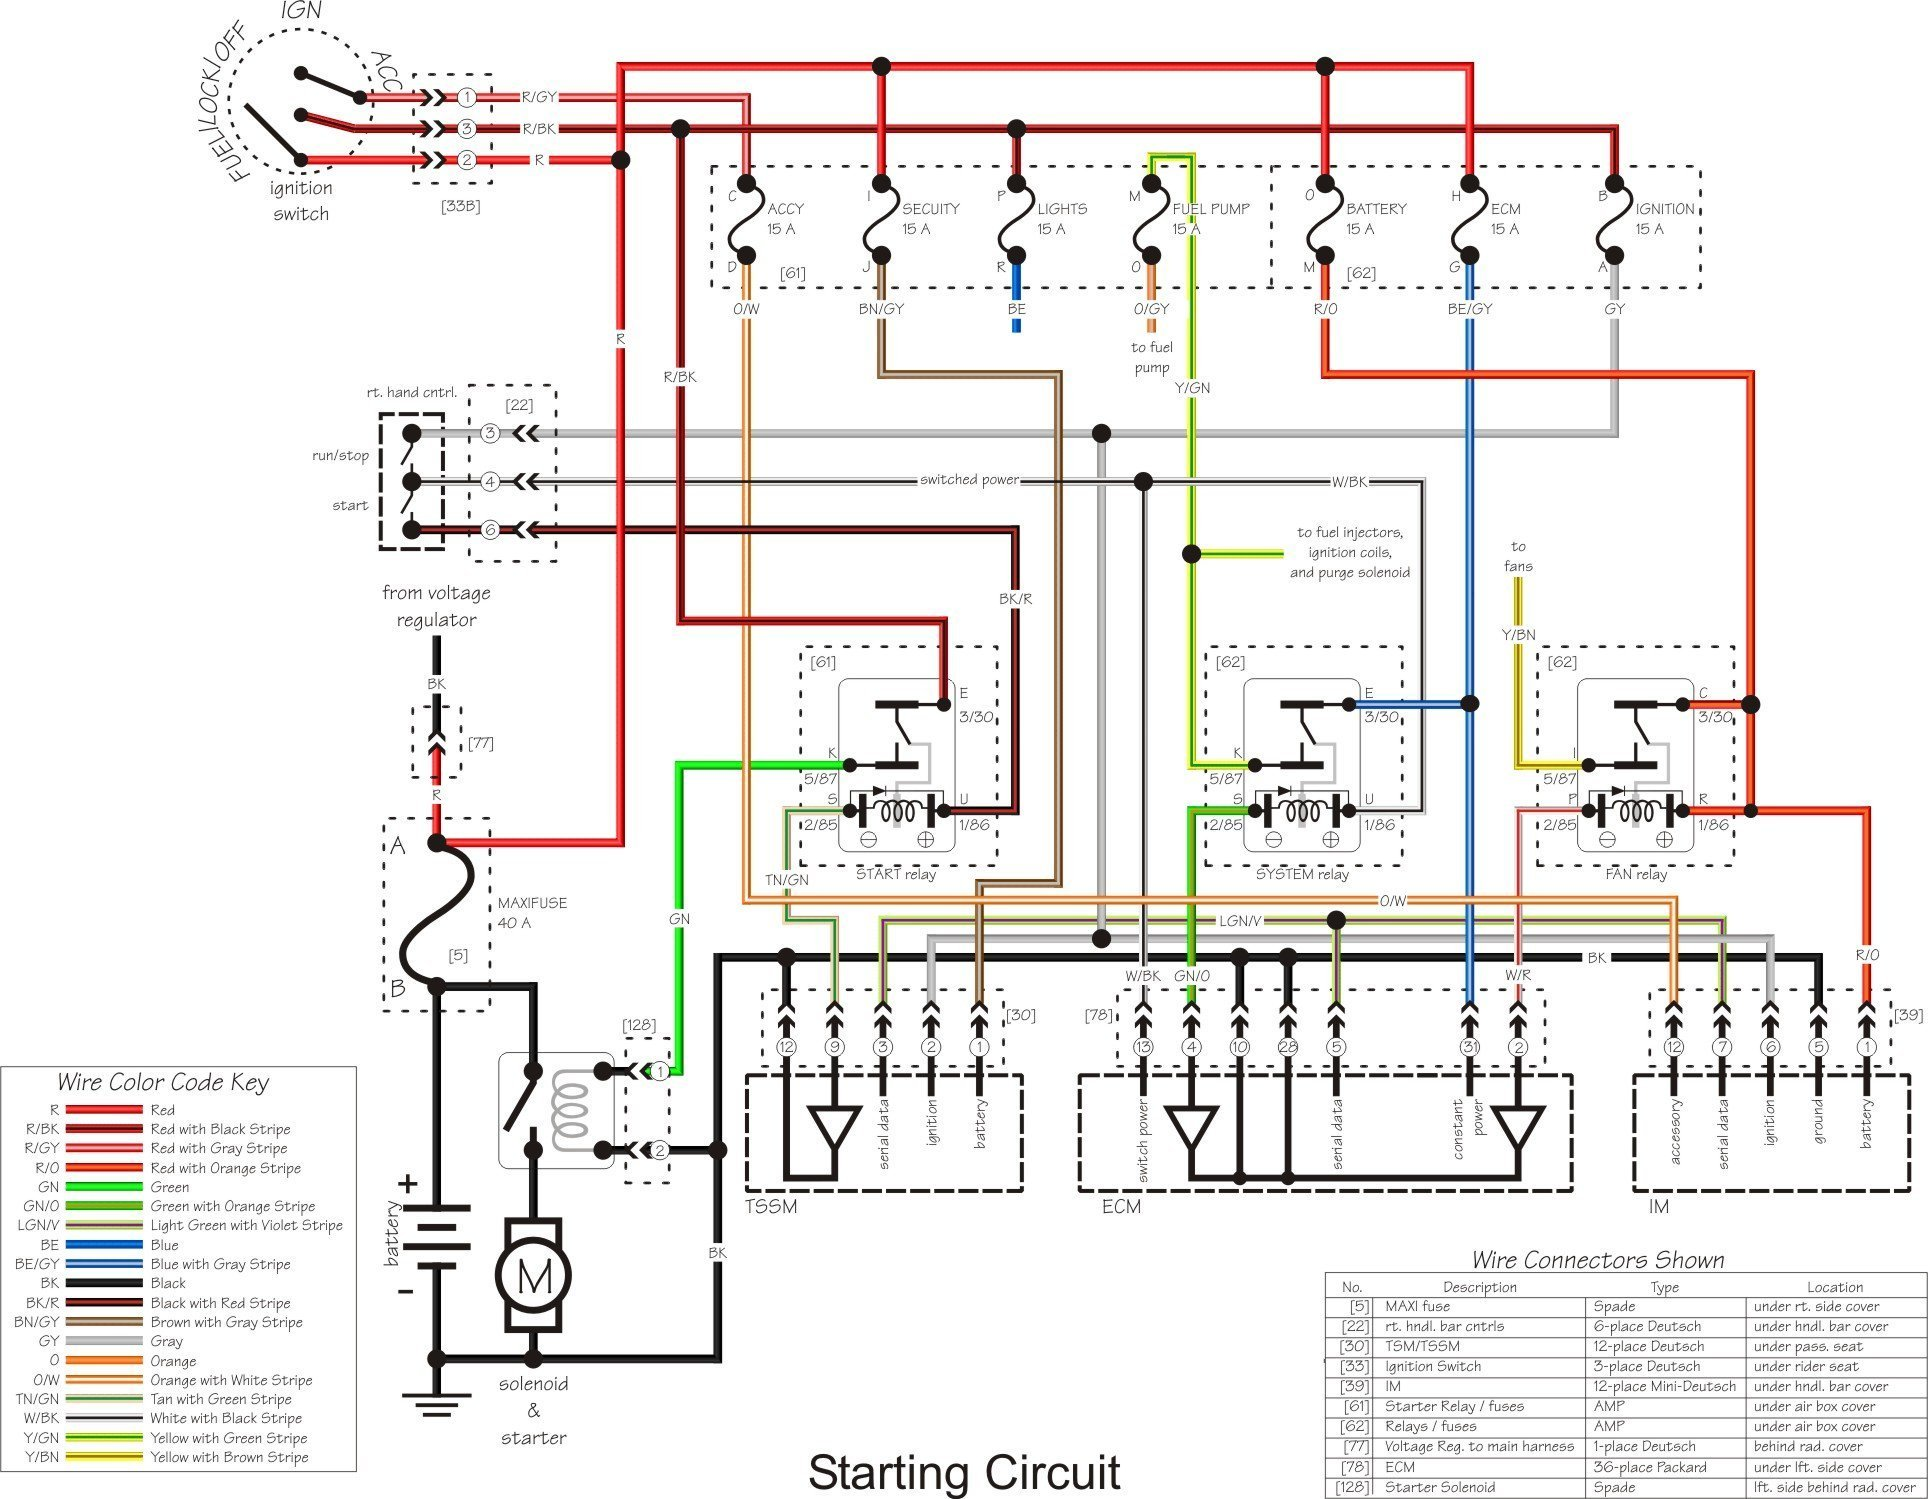 1995 sportster wiring diagram 1995 image wiring 1991 harley davidson sportster 883 wiring diagram schematics and on 1995 sportster wiring diagram